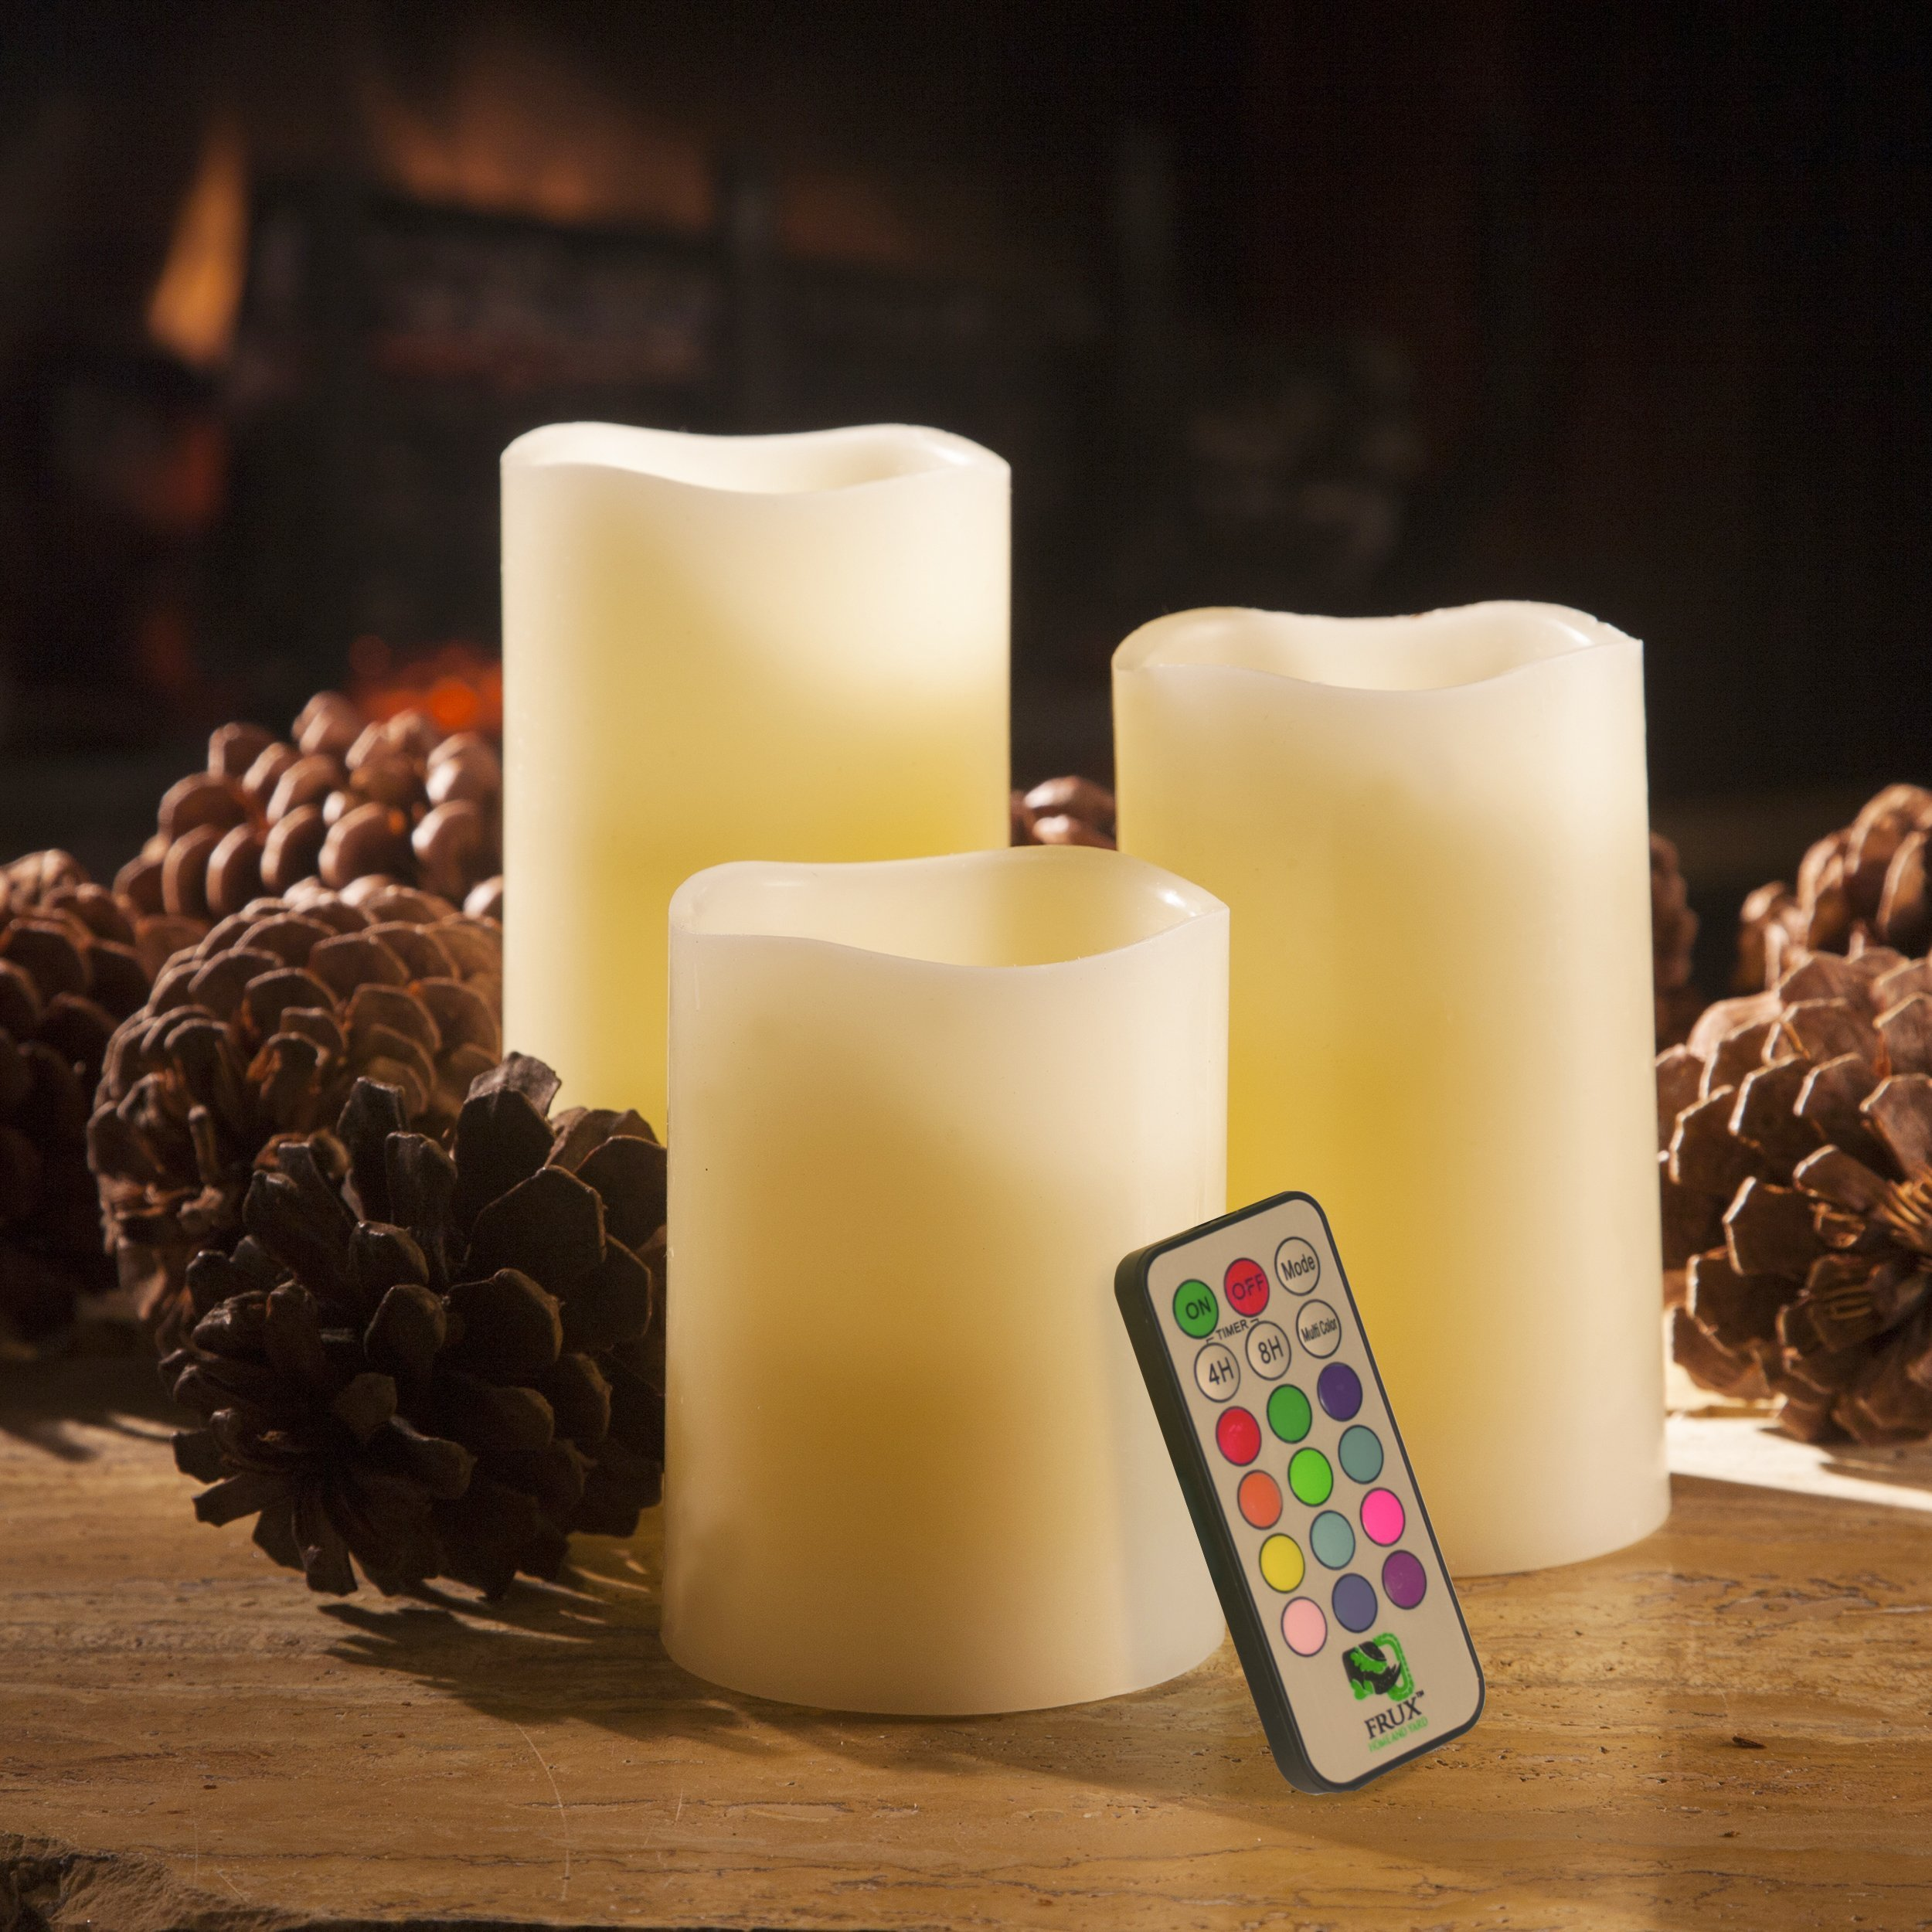 BEST FLAMELESS CANDLES WITH 12 COLOR, TIMER REMOTE CONTROL, Unscented Flickering Battery Operated Electric Candle for Home Decor, Weddings, Parties & Gifts, Set of 4' 5' 6' Pillars & BONUS Ball Candle by Frux Home and Yard (Image #3)